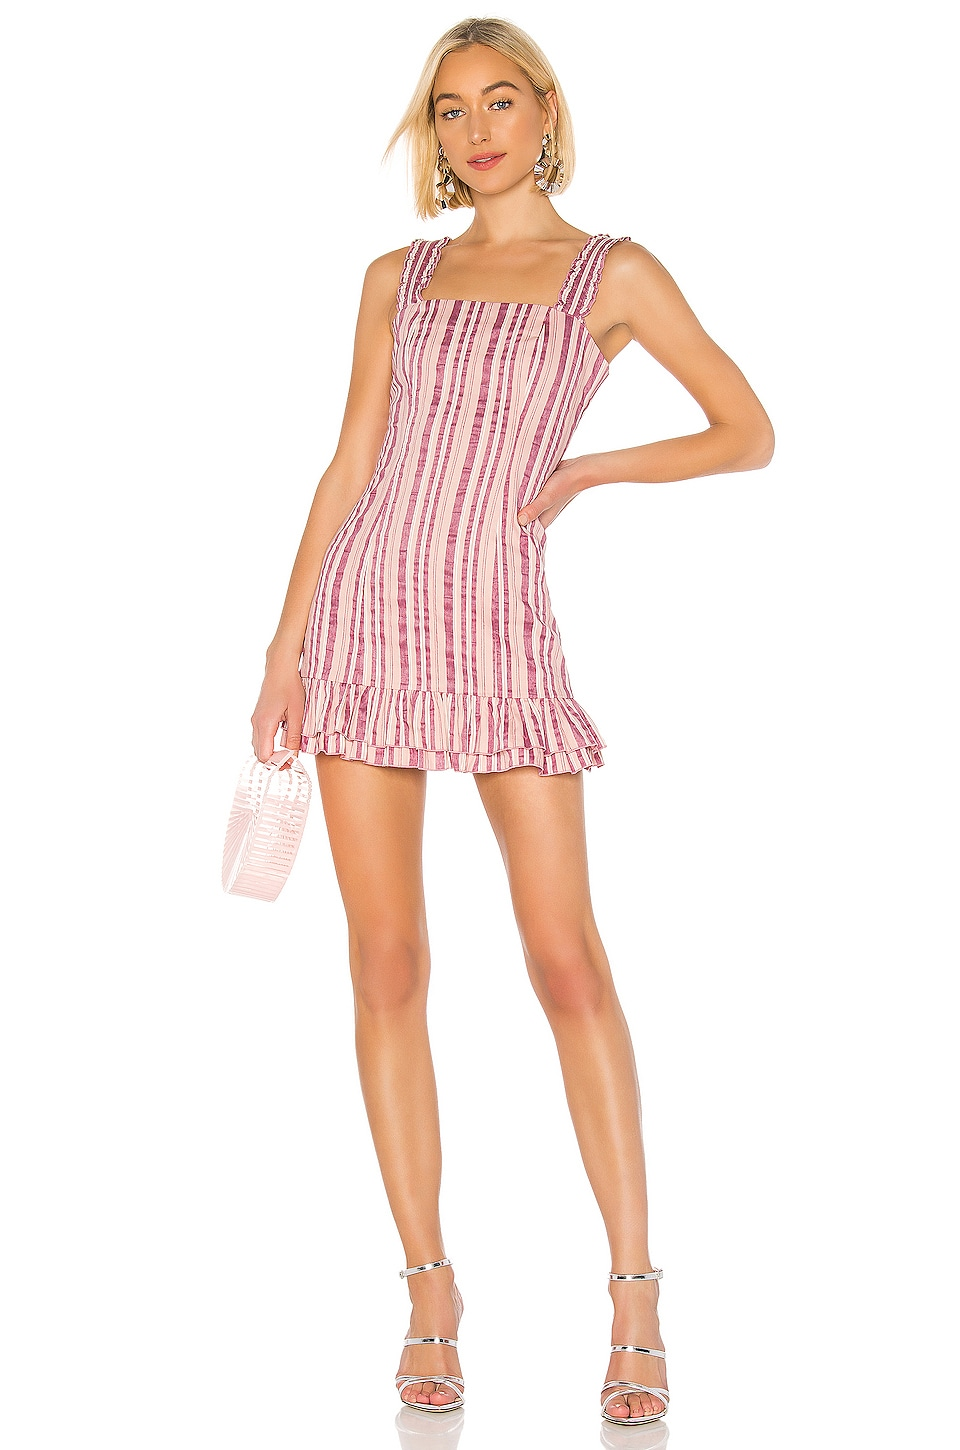 Alexis Brandy Dress in Rose Stripe